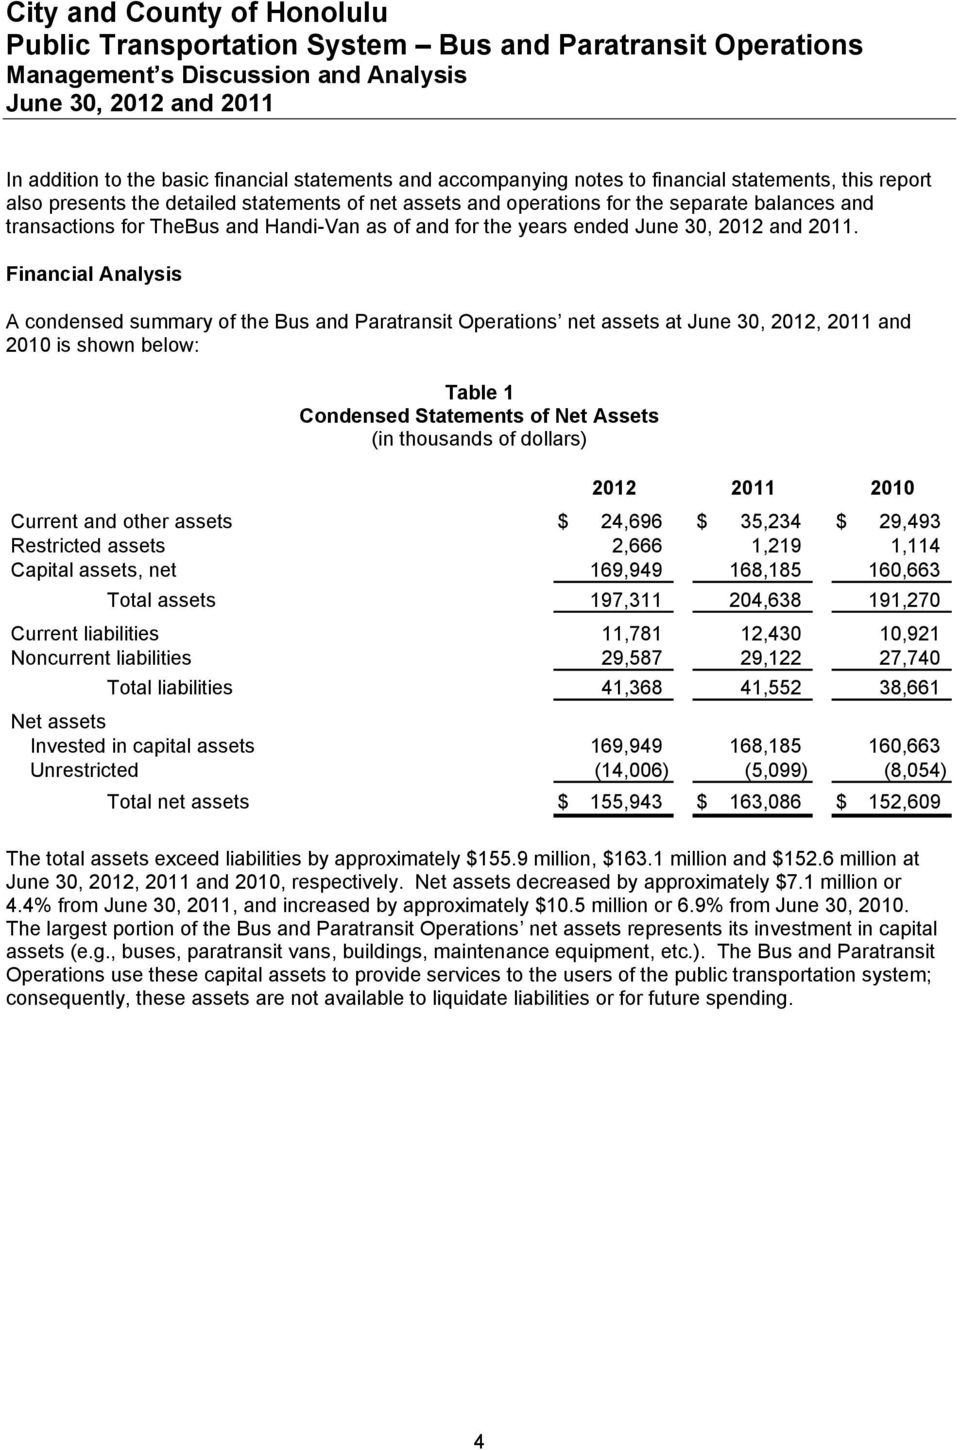 Financial Analysis A condensed summary of the Bus and Paratransit Operations net assets at June 30, 2012, 2011 and 2010 is shown below: Table 1 Condensed Statements of Net Assets (in thousands of